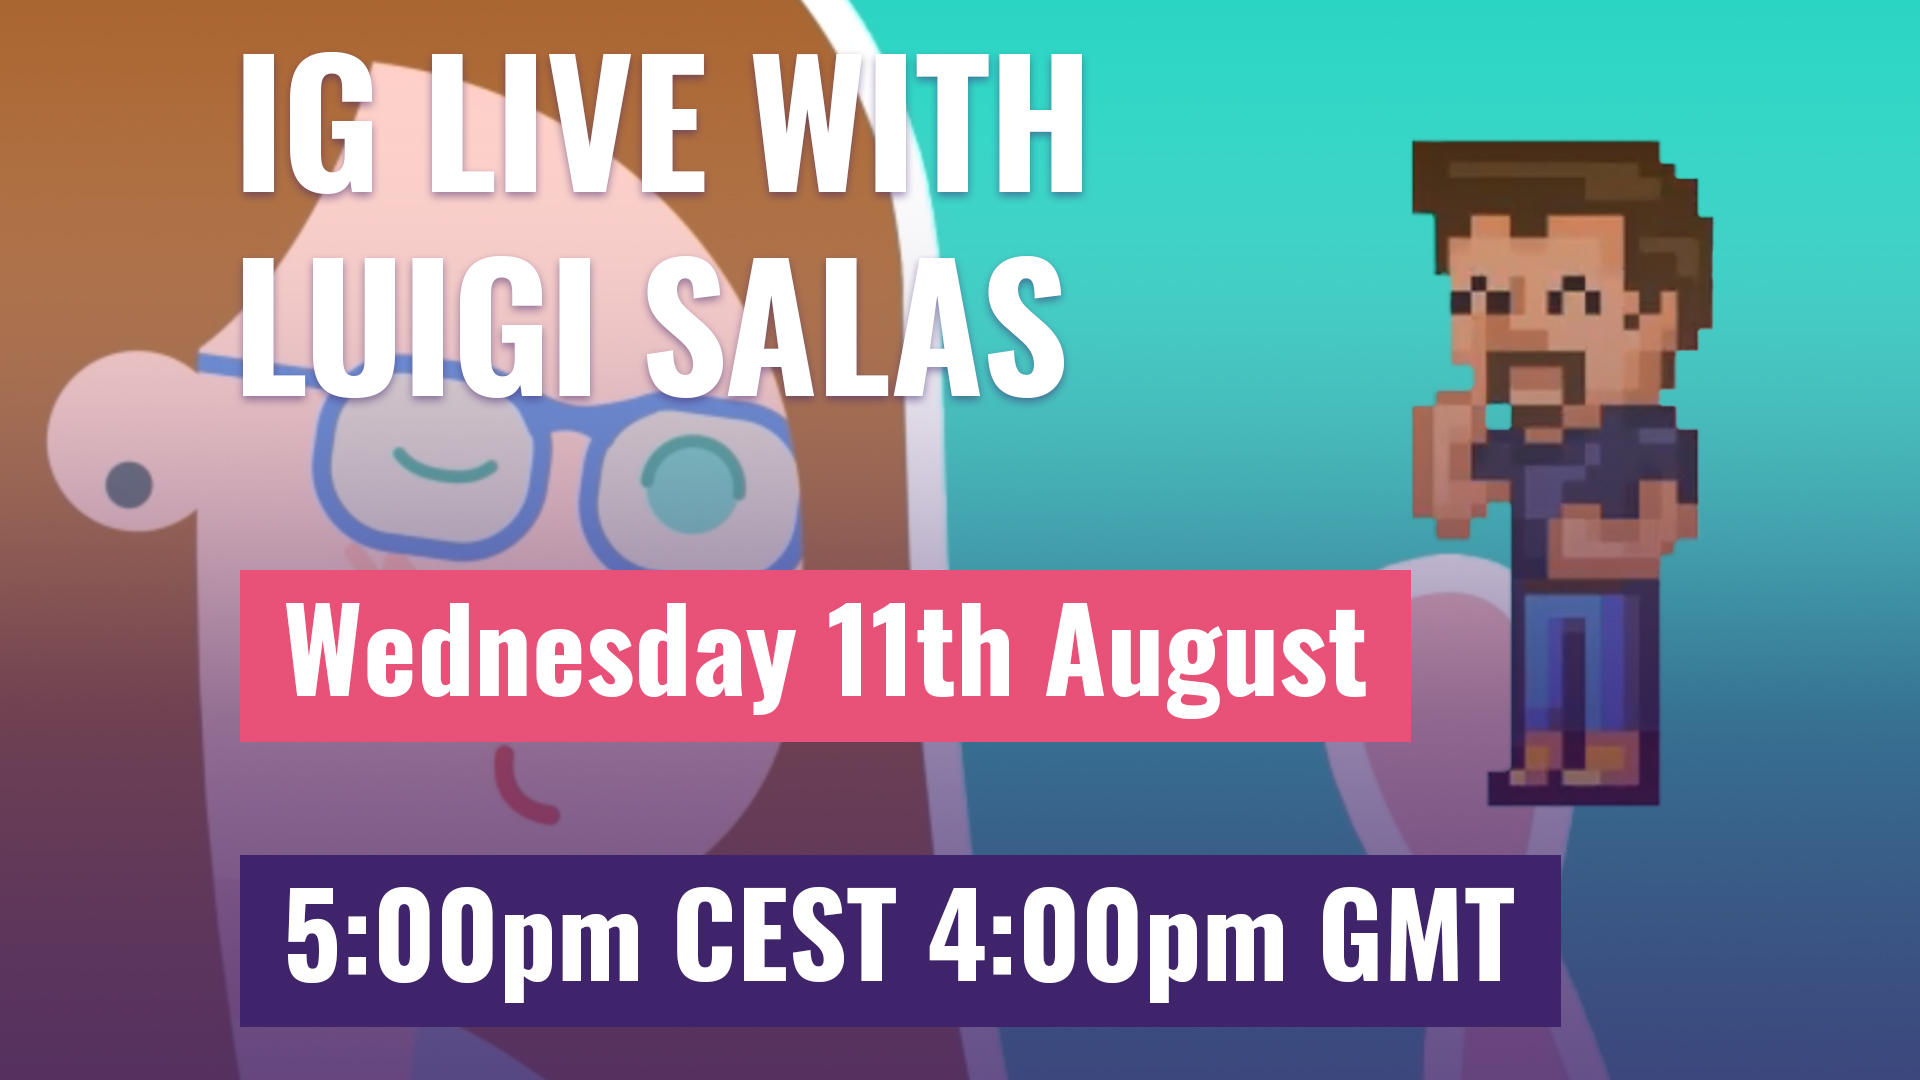 IG Live with Luigi Salas, Wednsday 11th August, 5pm CEST, 4pm GMT